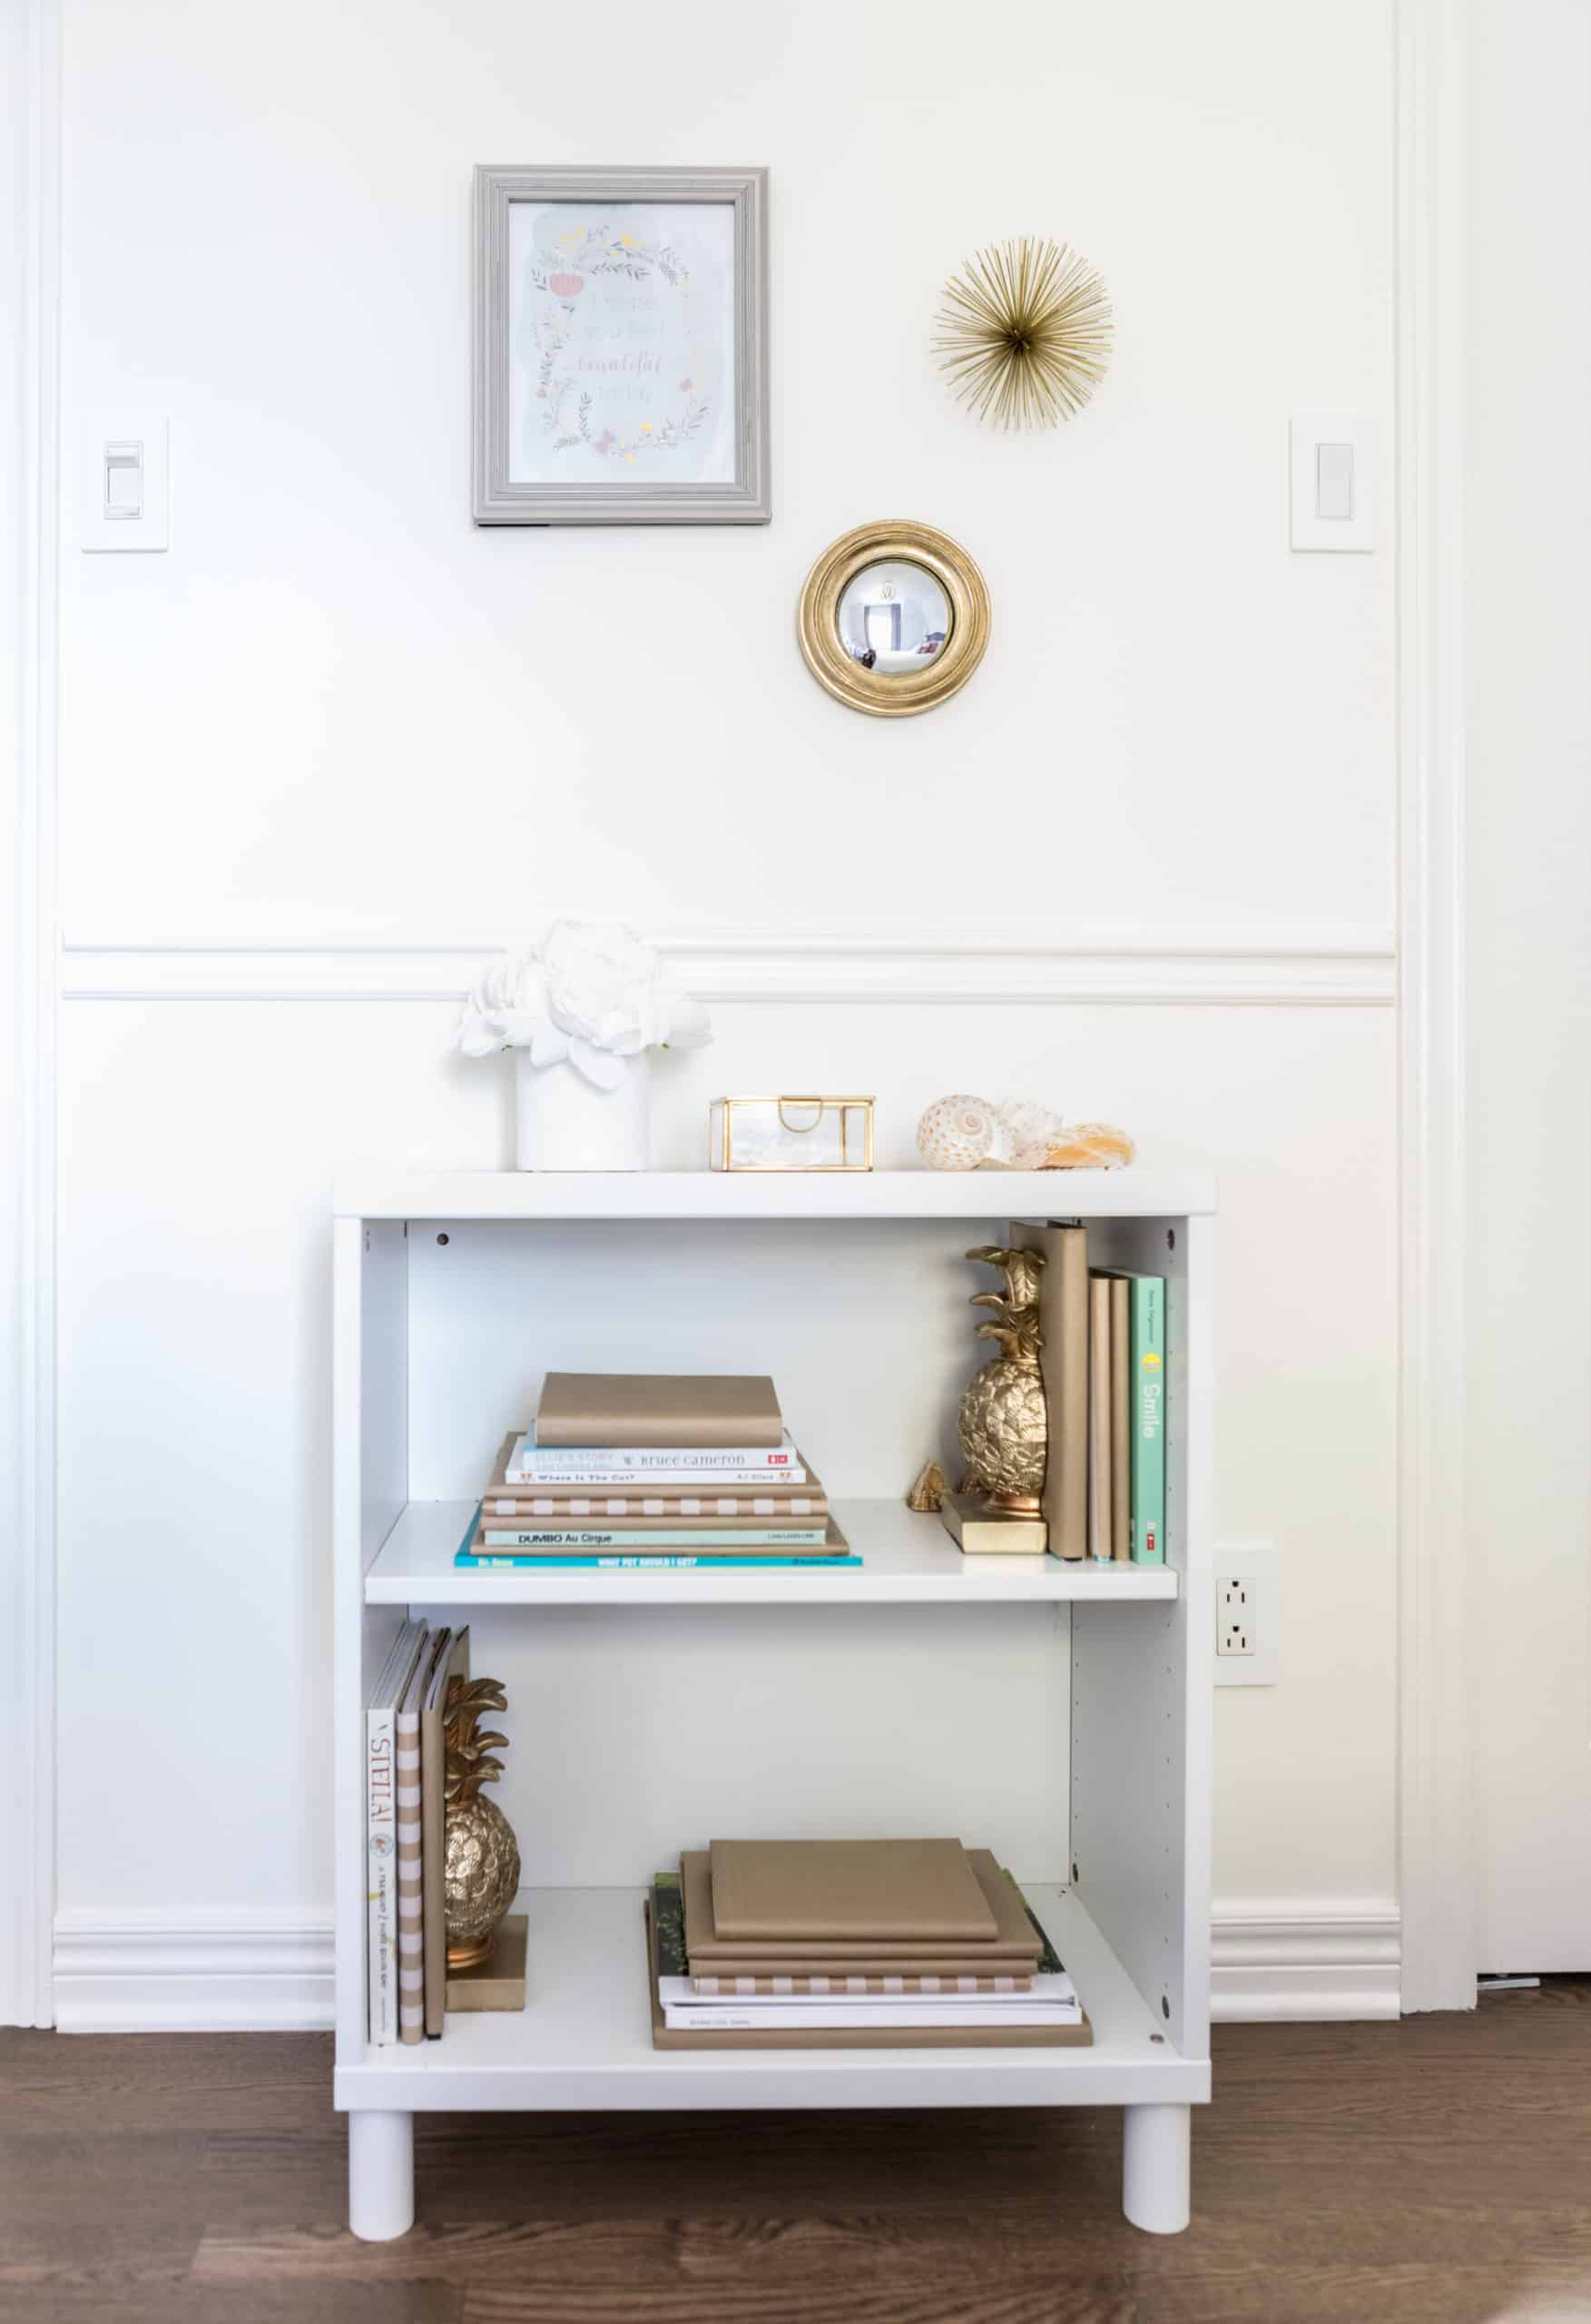 Small bookshelf with various books on it